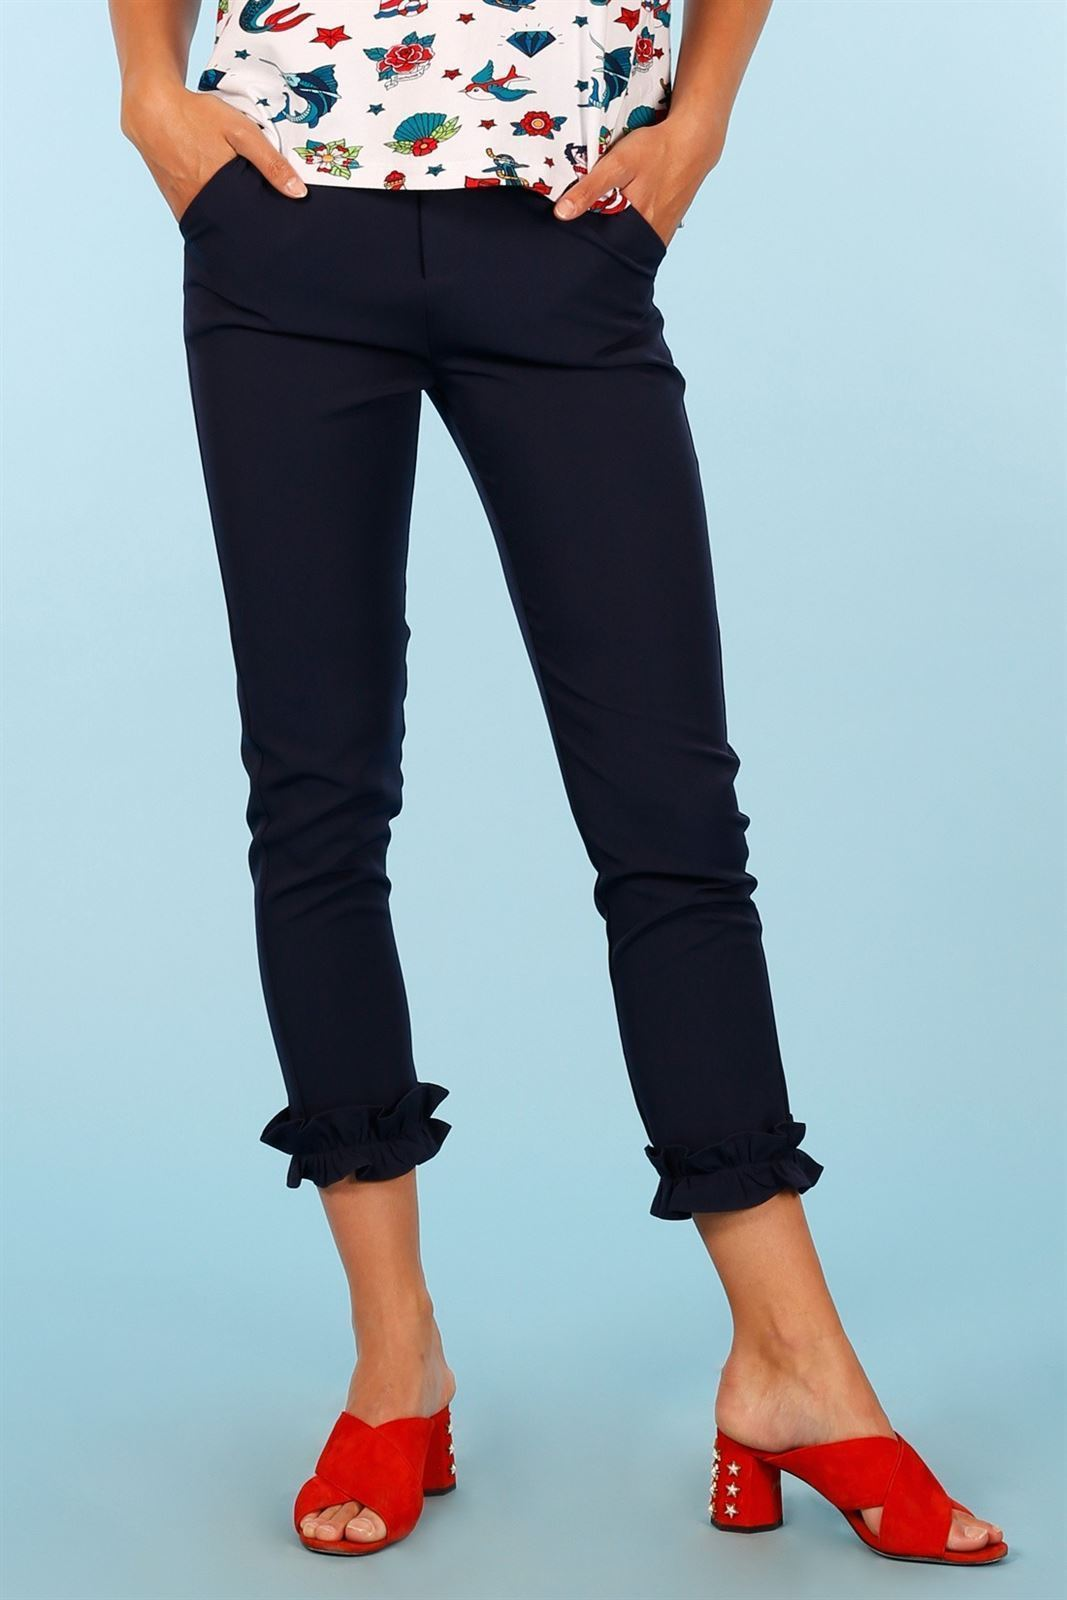 NAVY TROUSERS MINUETO - Imagen 3